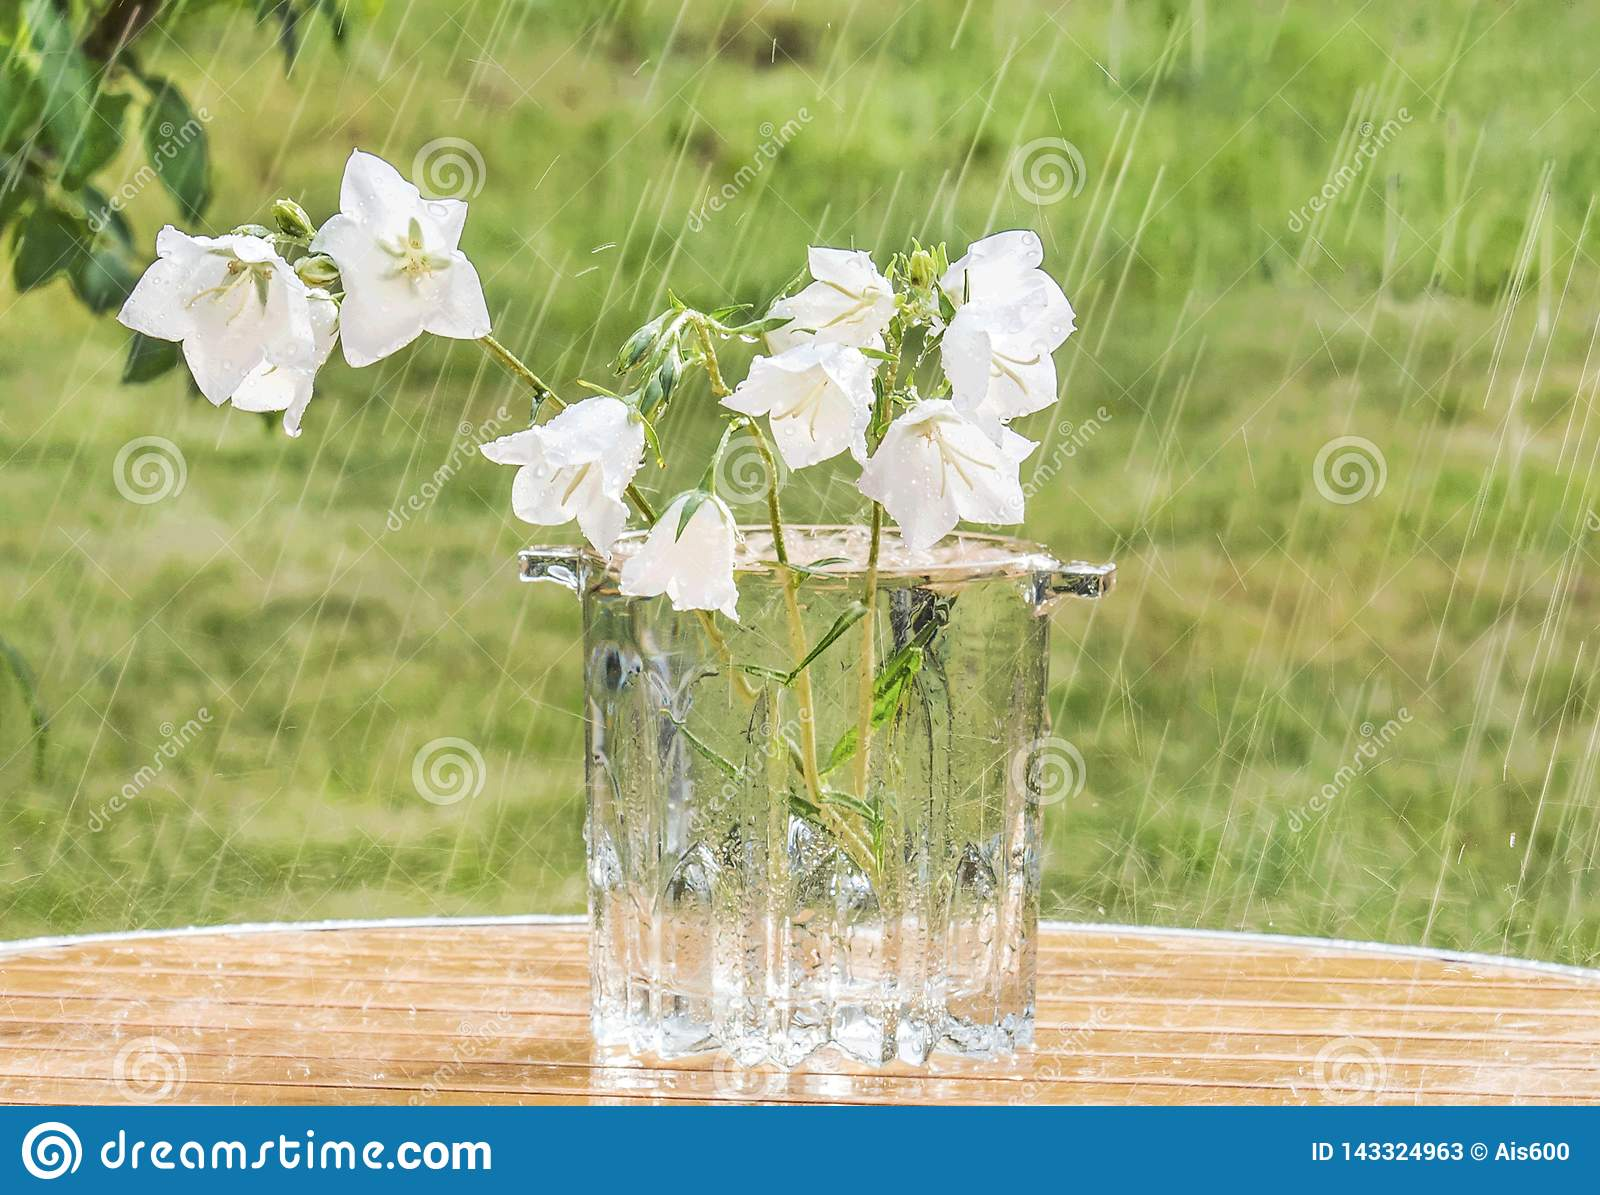 White Bells In A Vase On A Table In The Garden Under A Summer Rain Stock Image Image Of Meadow Beauty 143324963